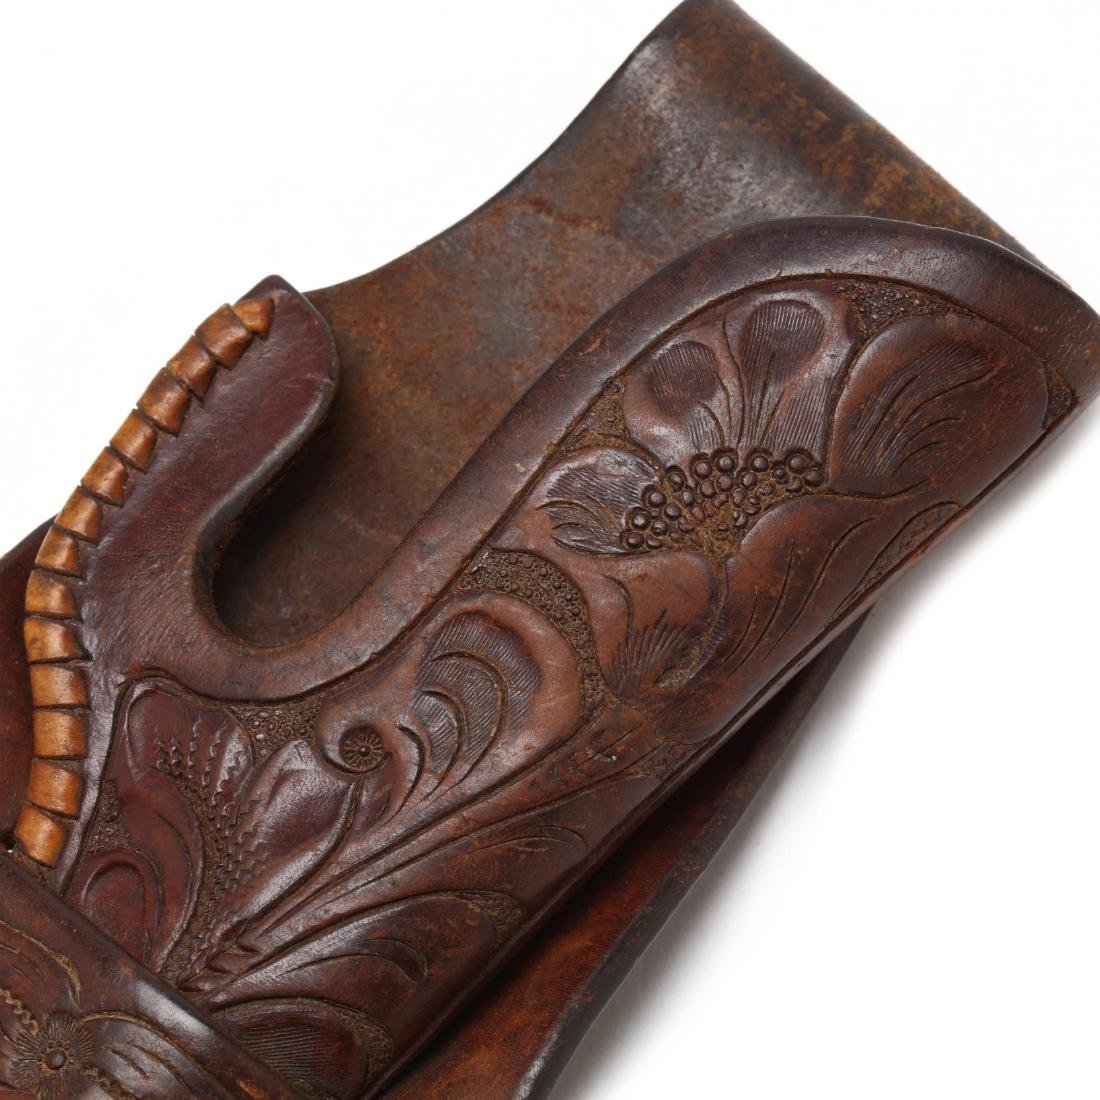 H.H. Hieser, Vintage Tooled Leather Holster - 4